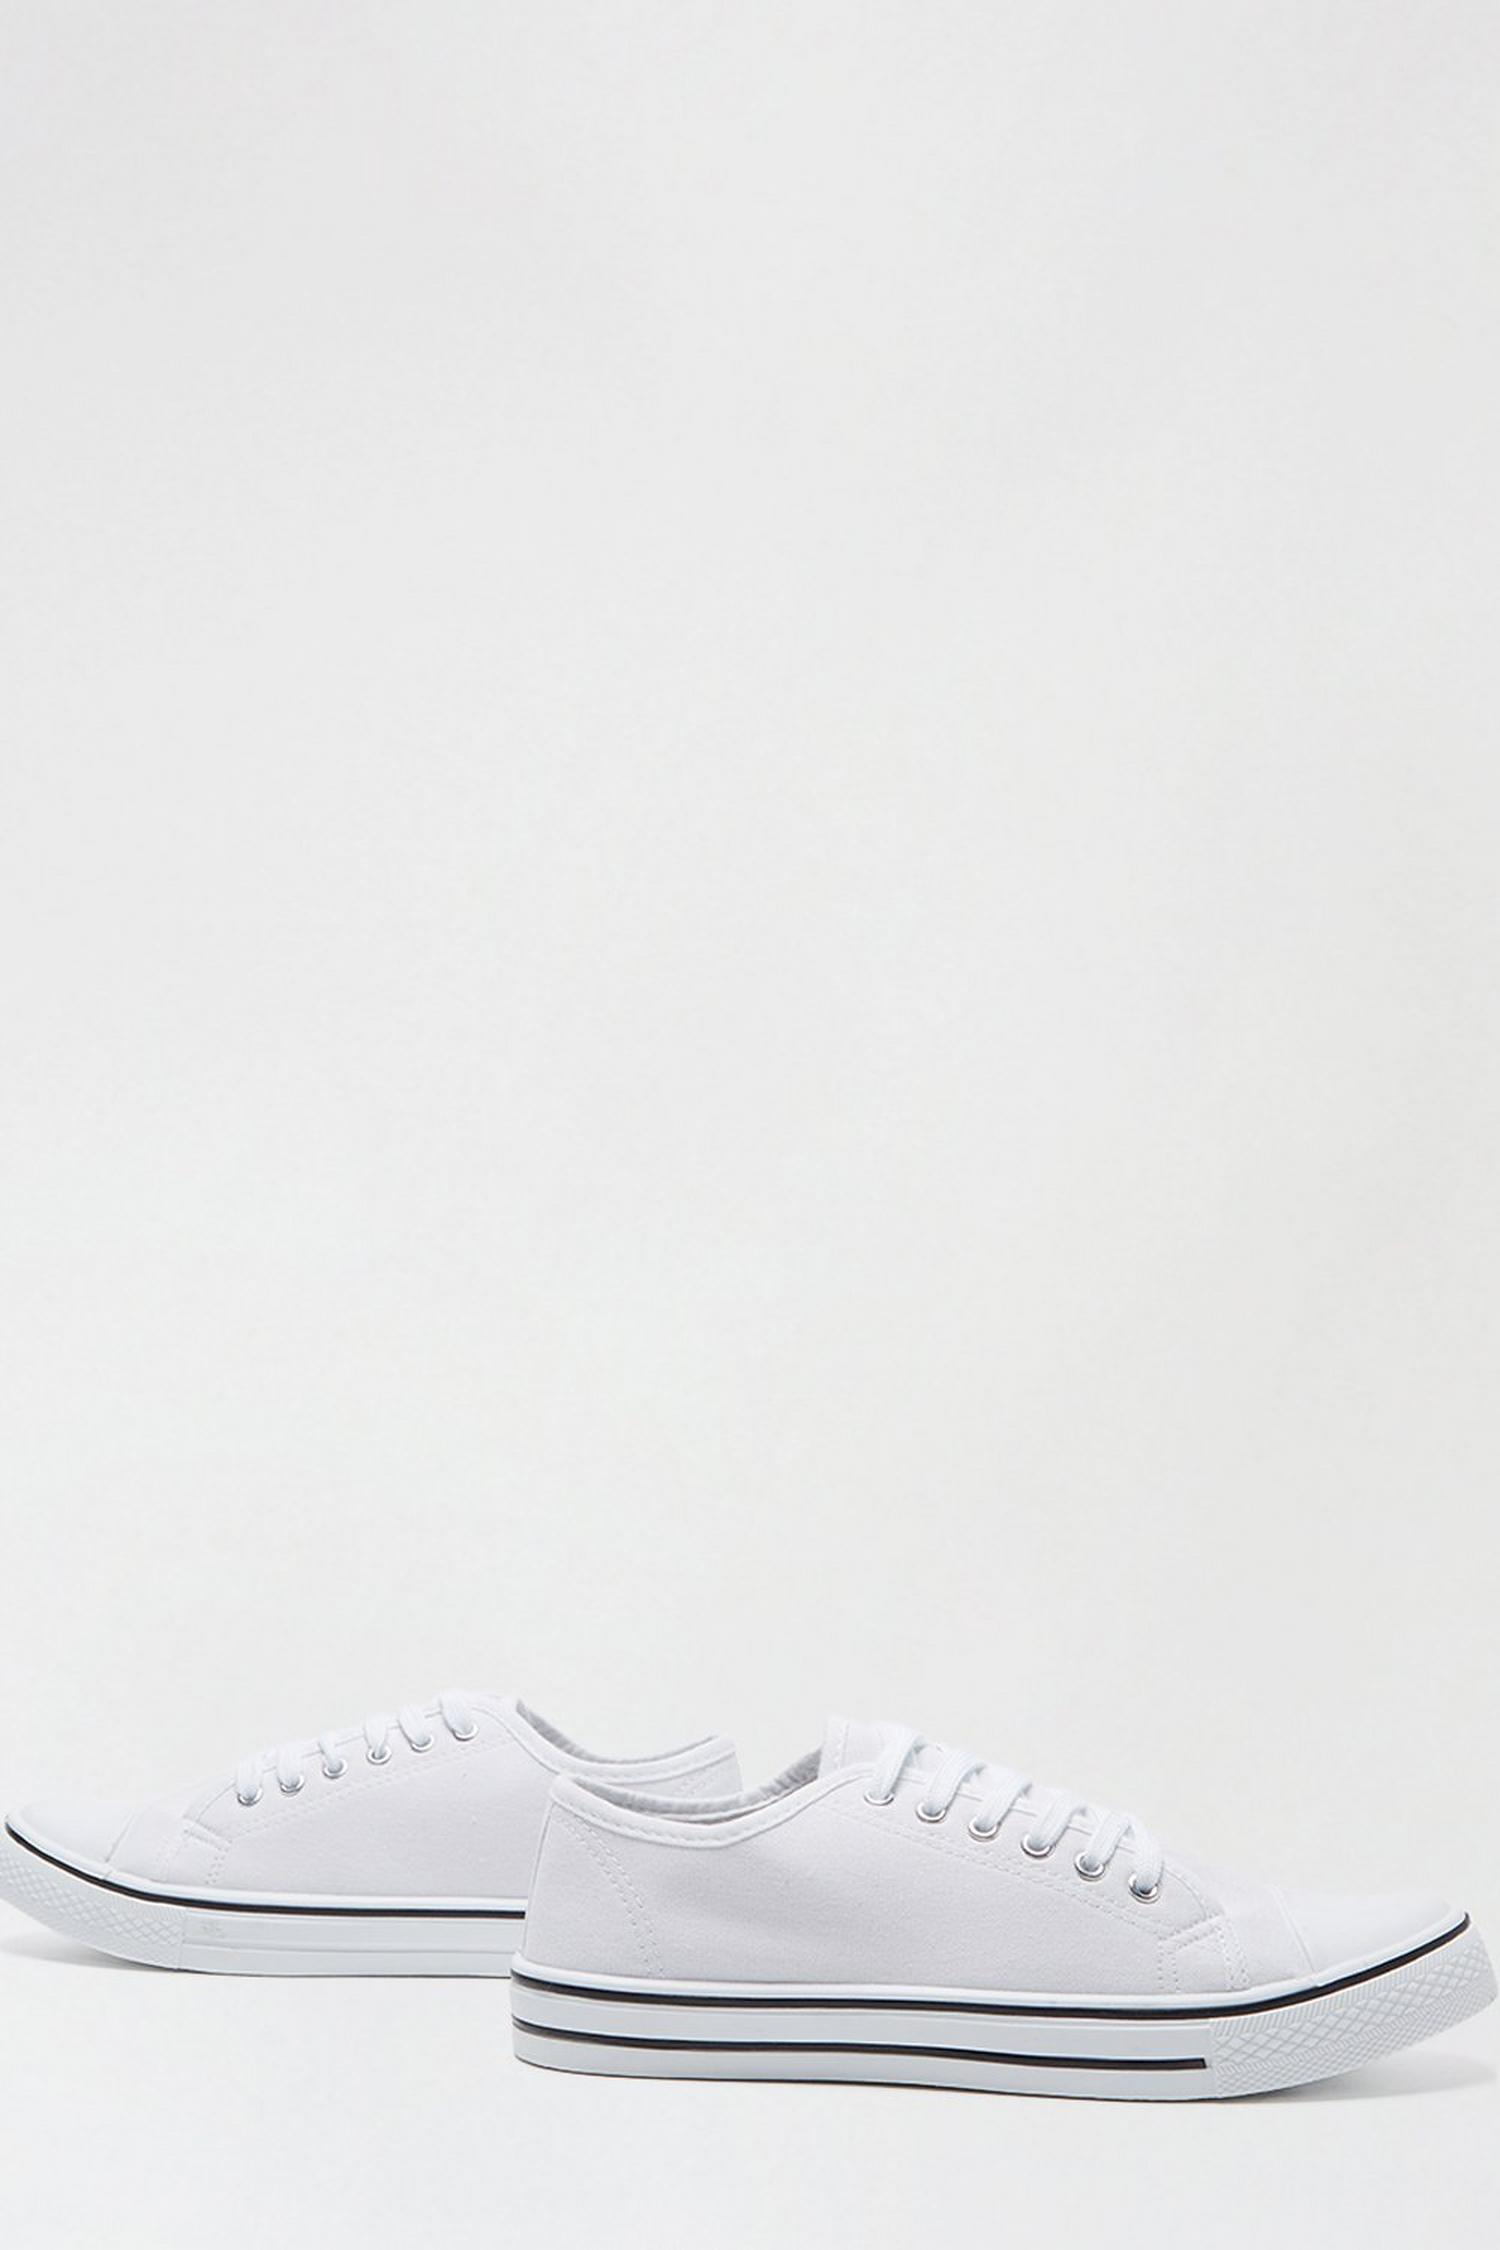 173 White India Canvas Lace Up Trainer image number 3